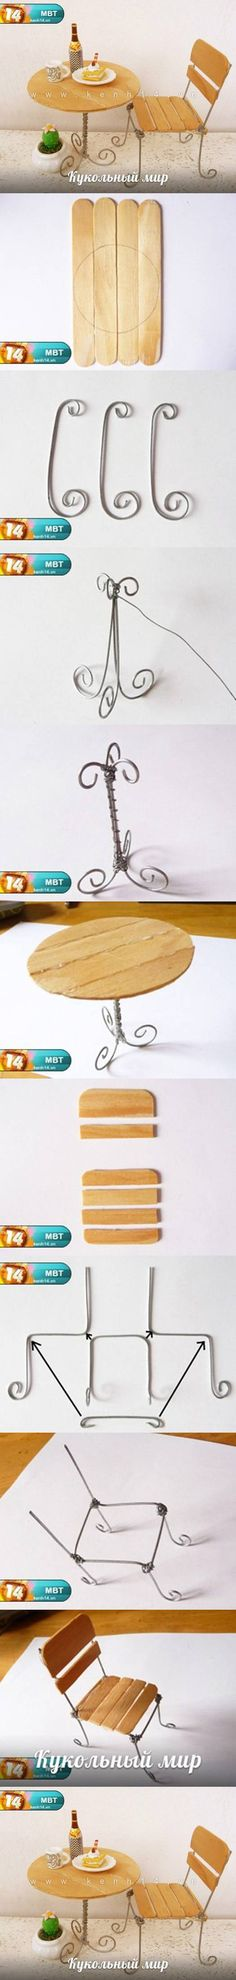 DIY Popsicle Stick Desk and Chair DIY Popsicle Stick Desk and Chair